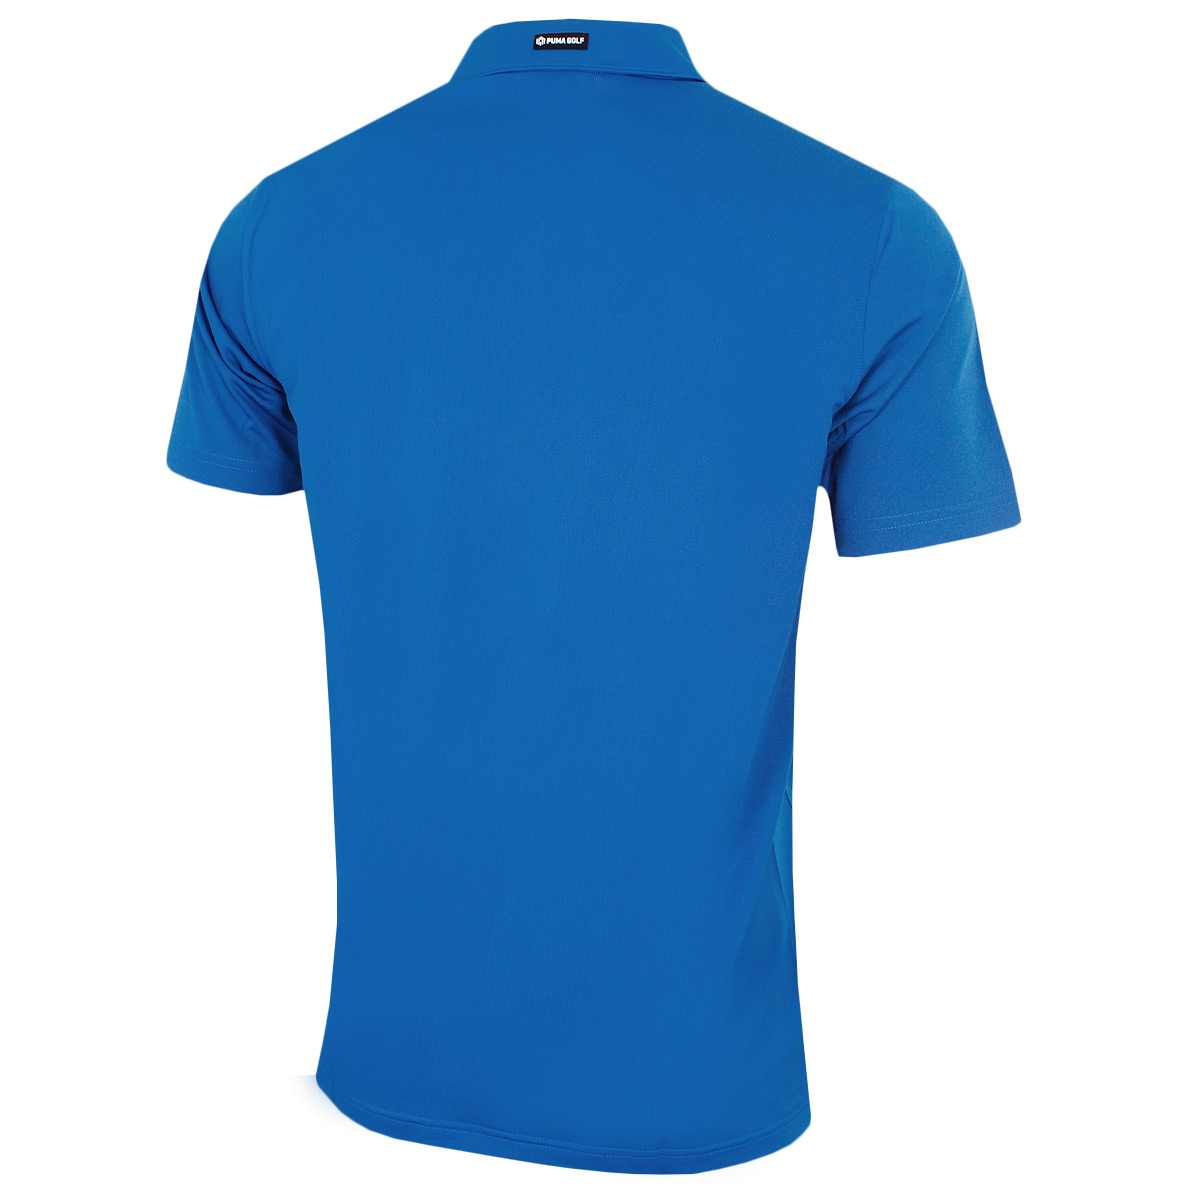 Puma-Golf-Mens-Essential-Pounce-Polo-Shirt-DryCell-Lightweight-Tech-43-OFF-RRP thumbnail 27